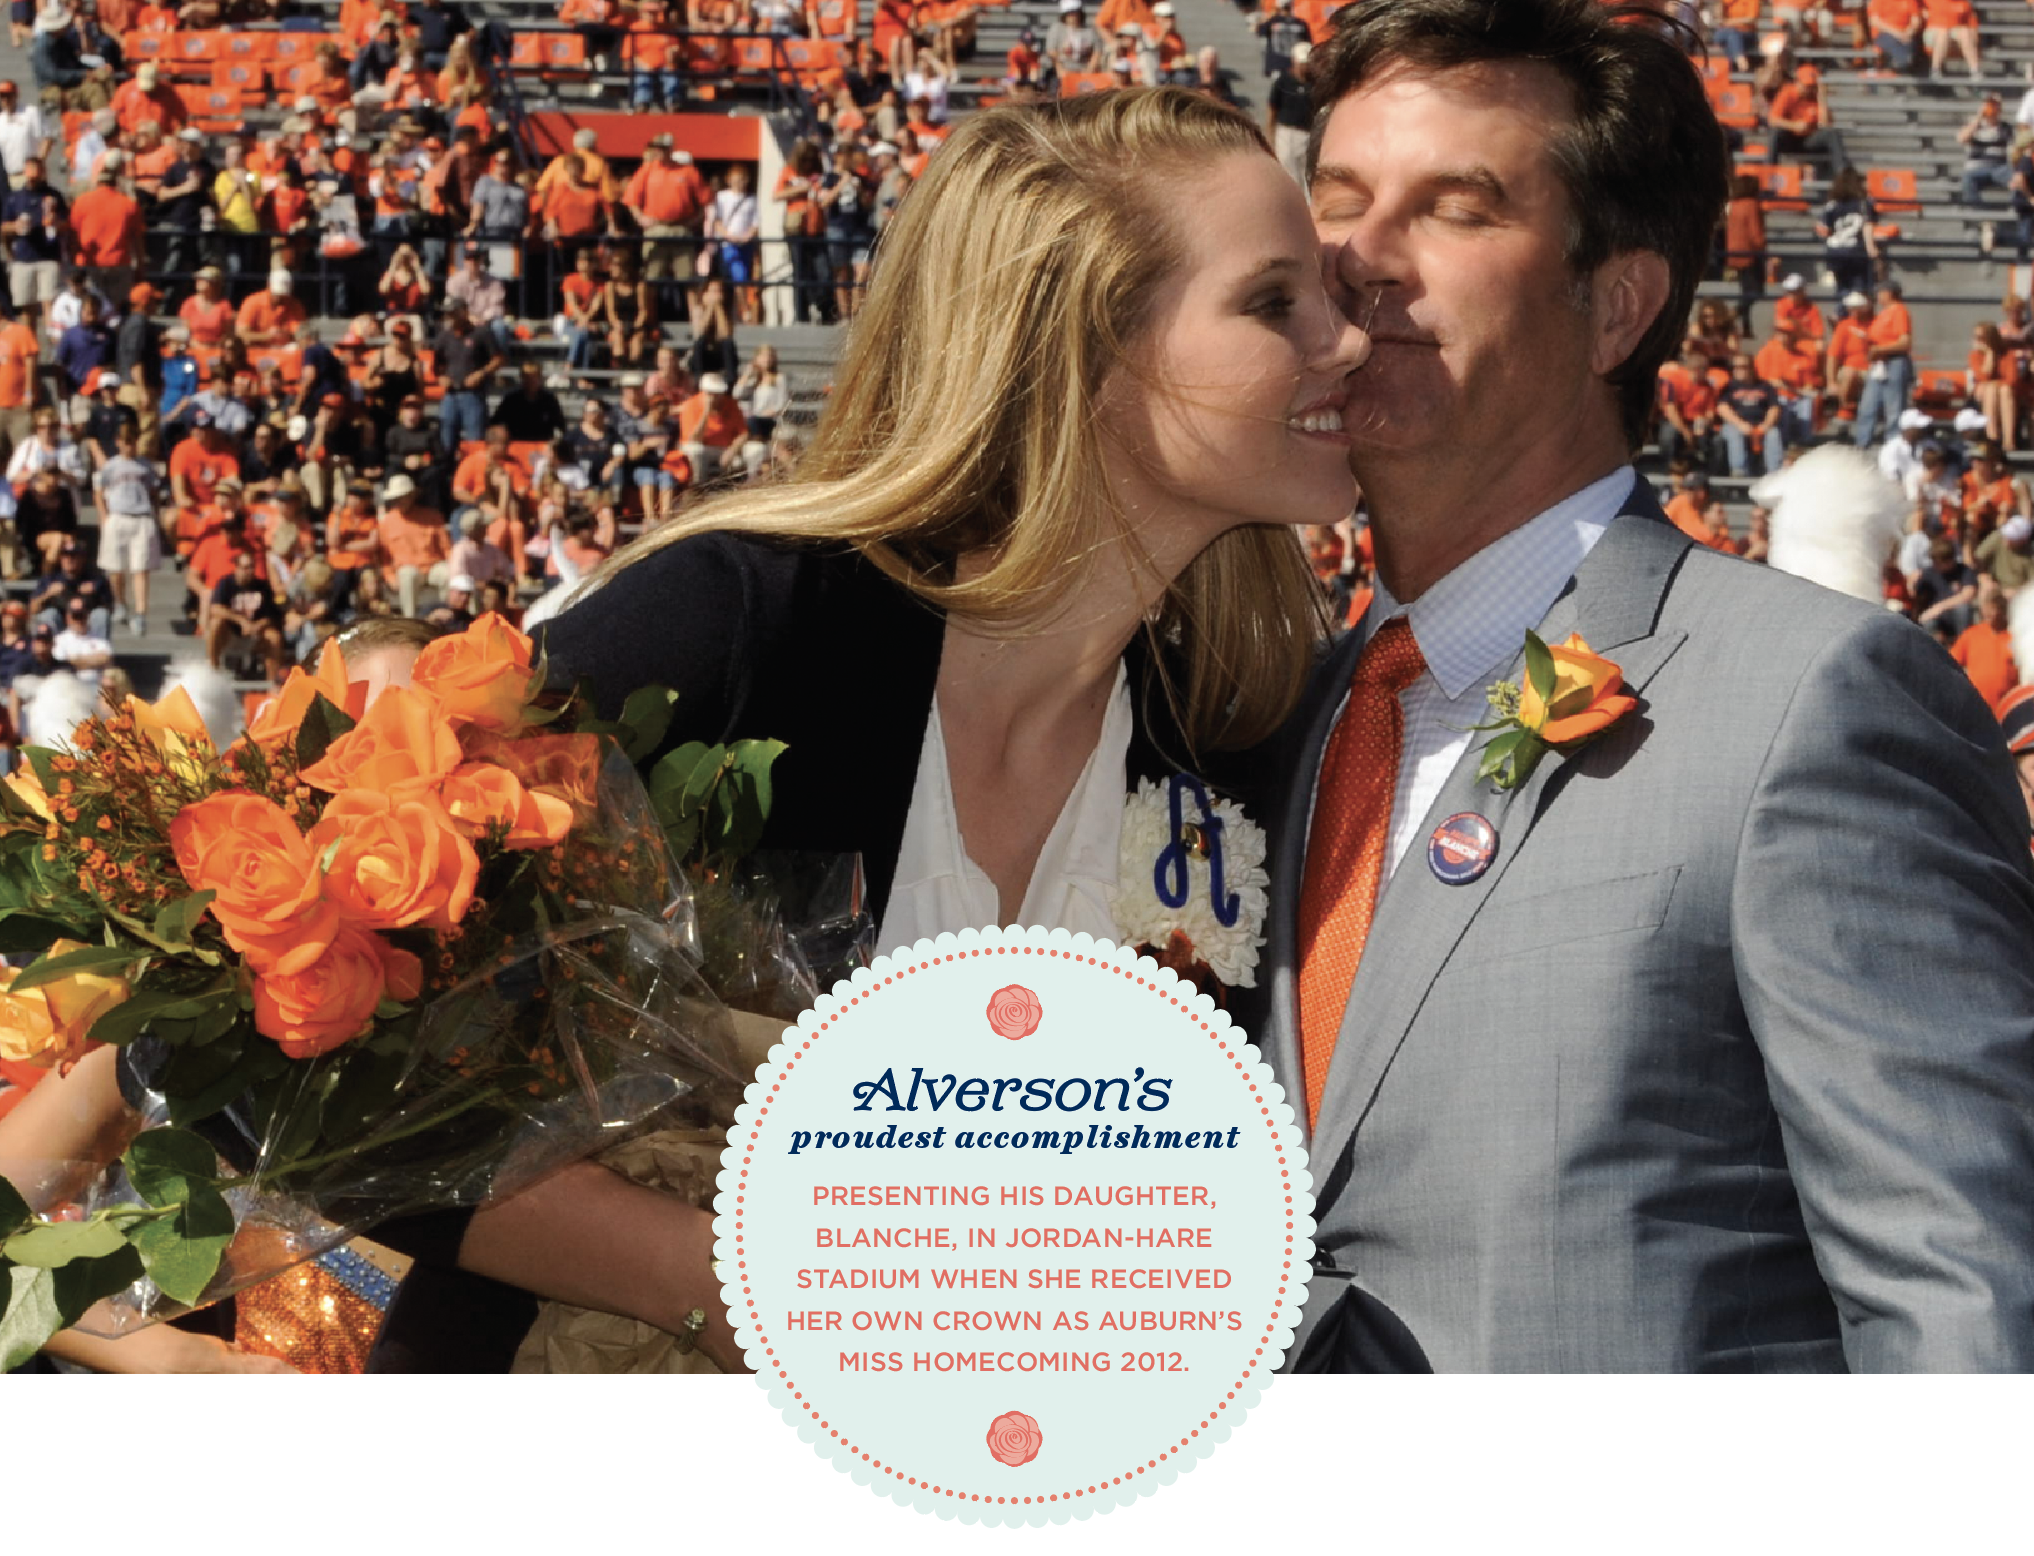 Alverson and daughter upon winning Homecoming queen; Alverson's proudest accomplishment: Presenting his daughter, Blanche, in Jordan-Hare stadium when she received her crown as Auburn's Miss Homecoming 2012.